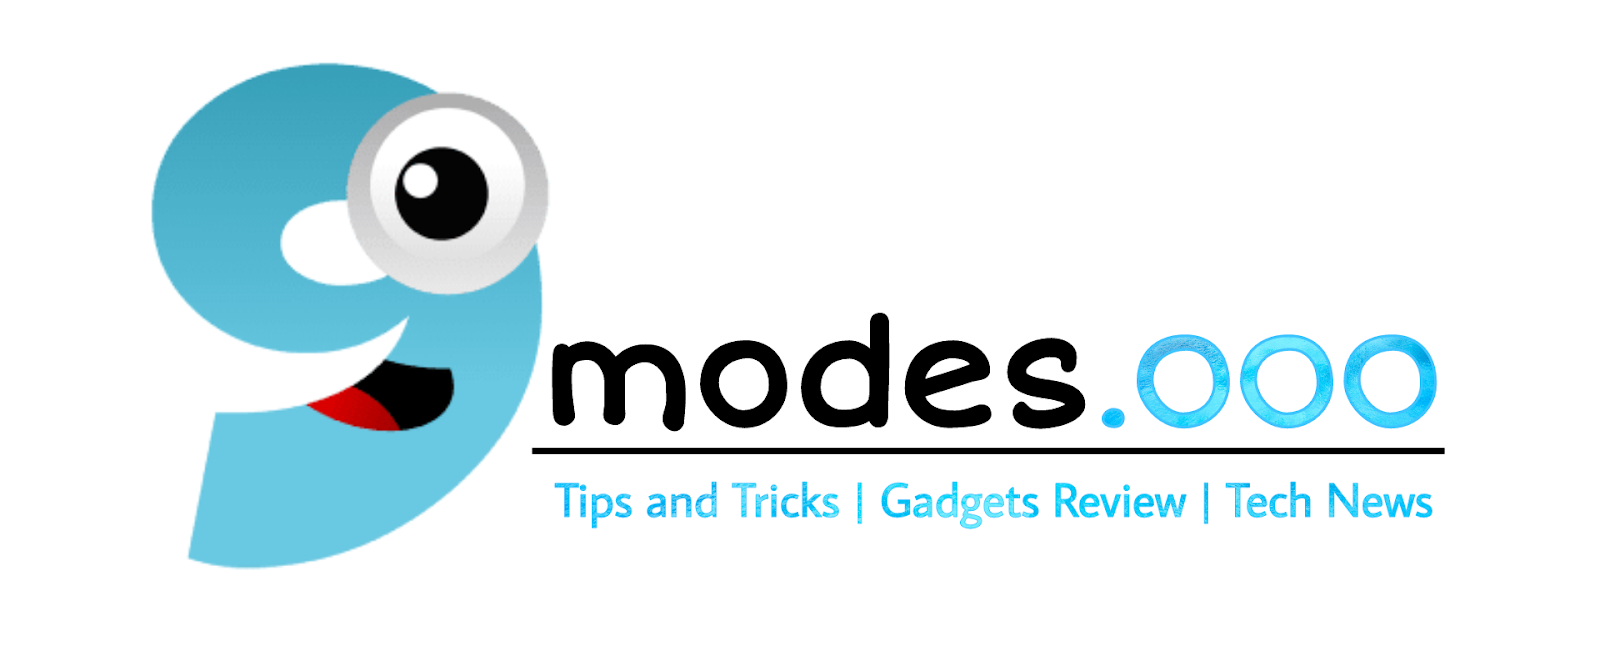 9modes.ooo - The ultimate source for Gadgets Review, Tips and Tricks, Games Review